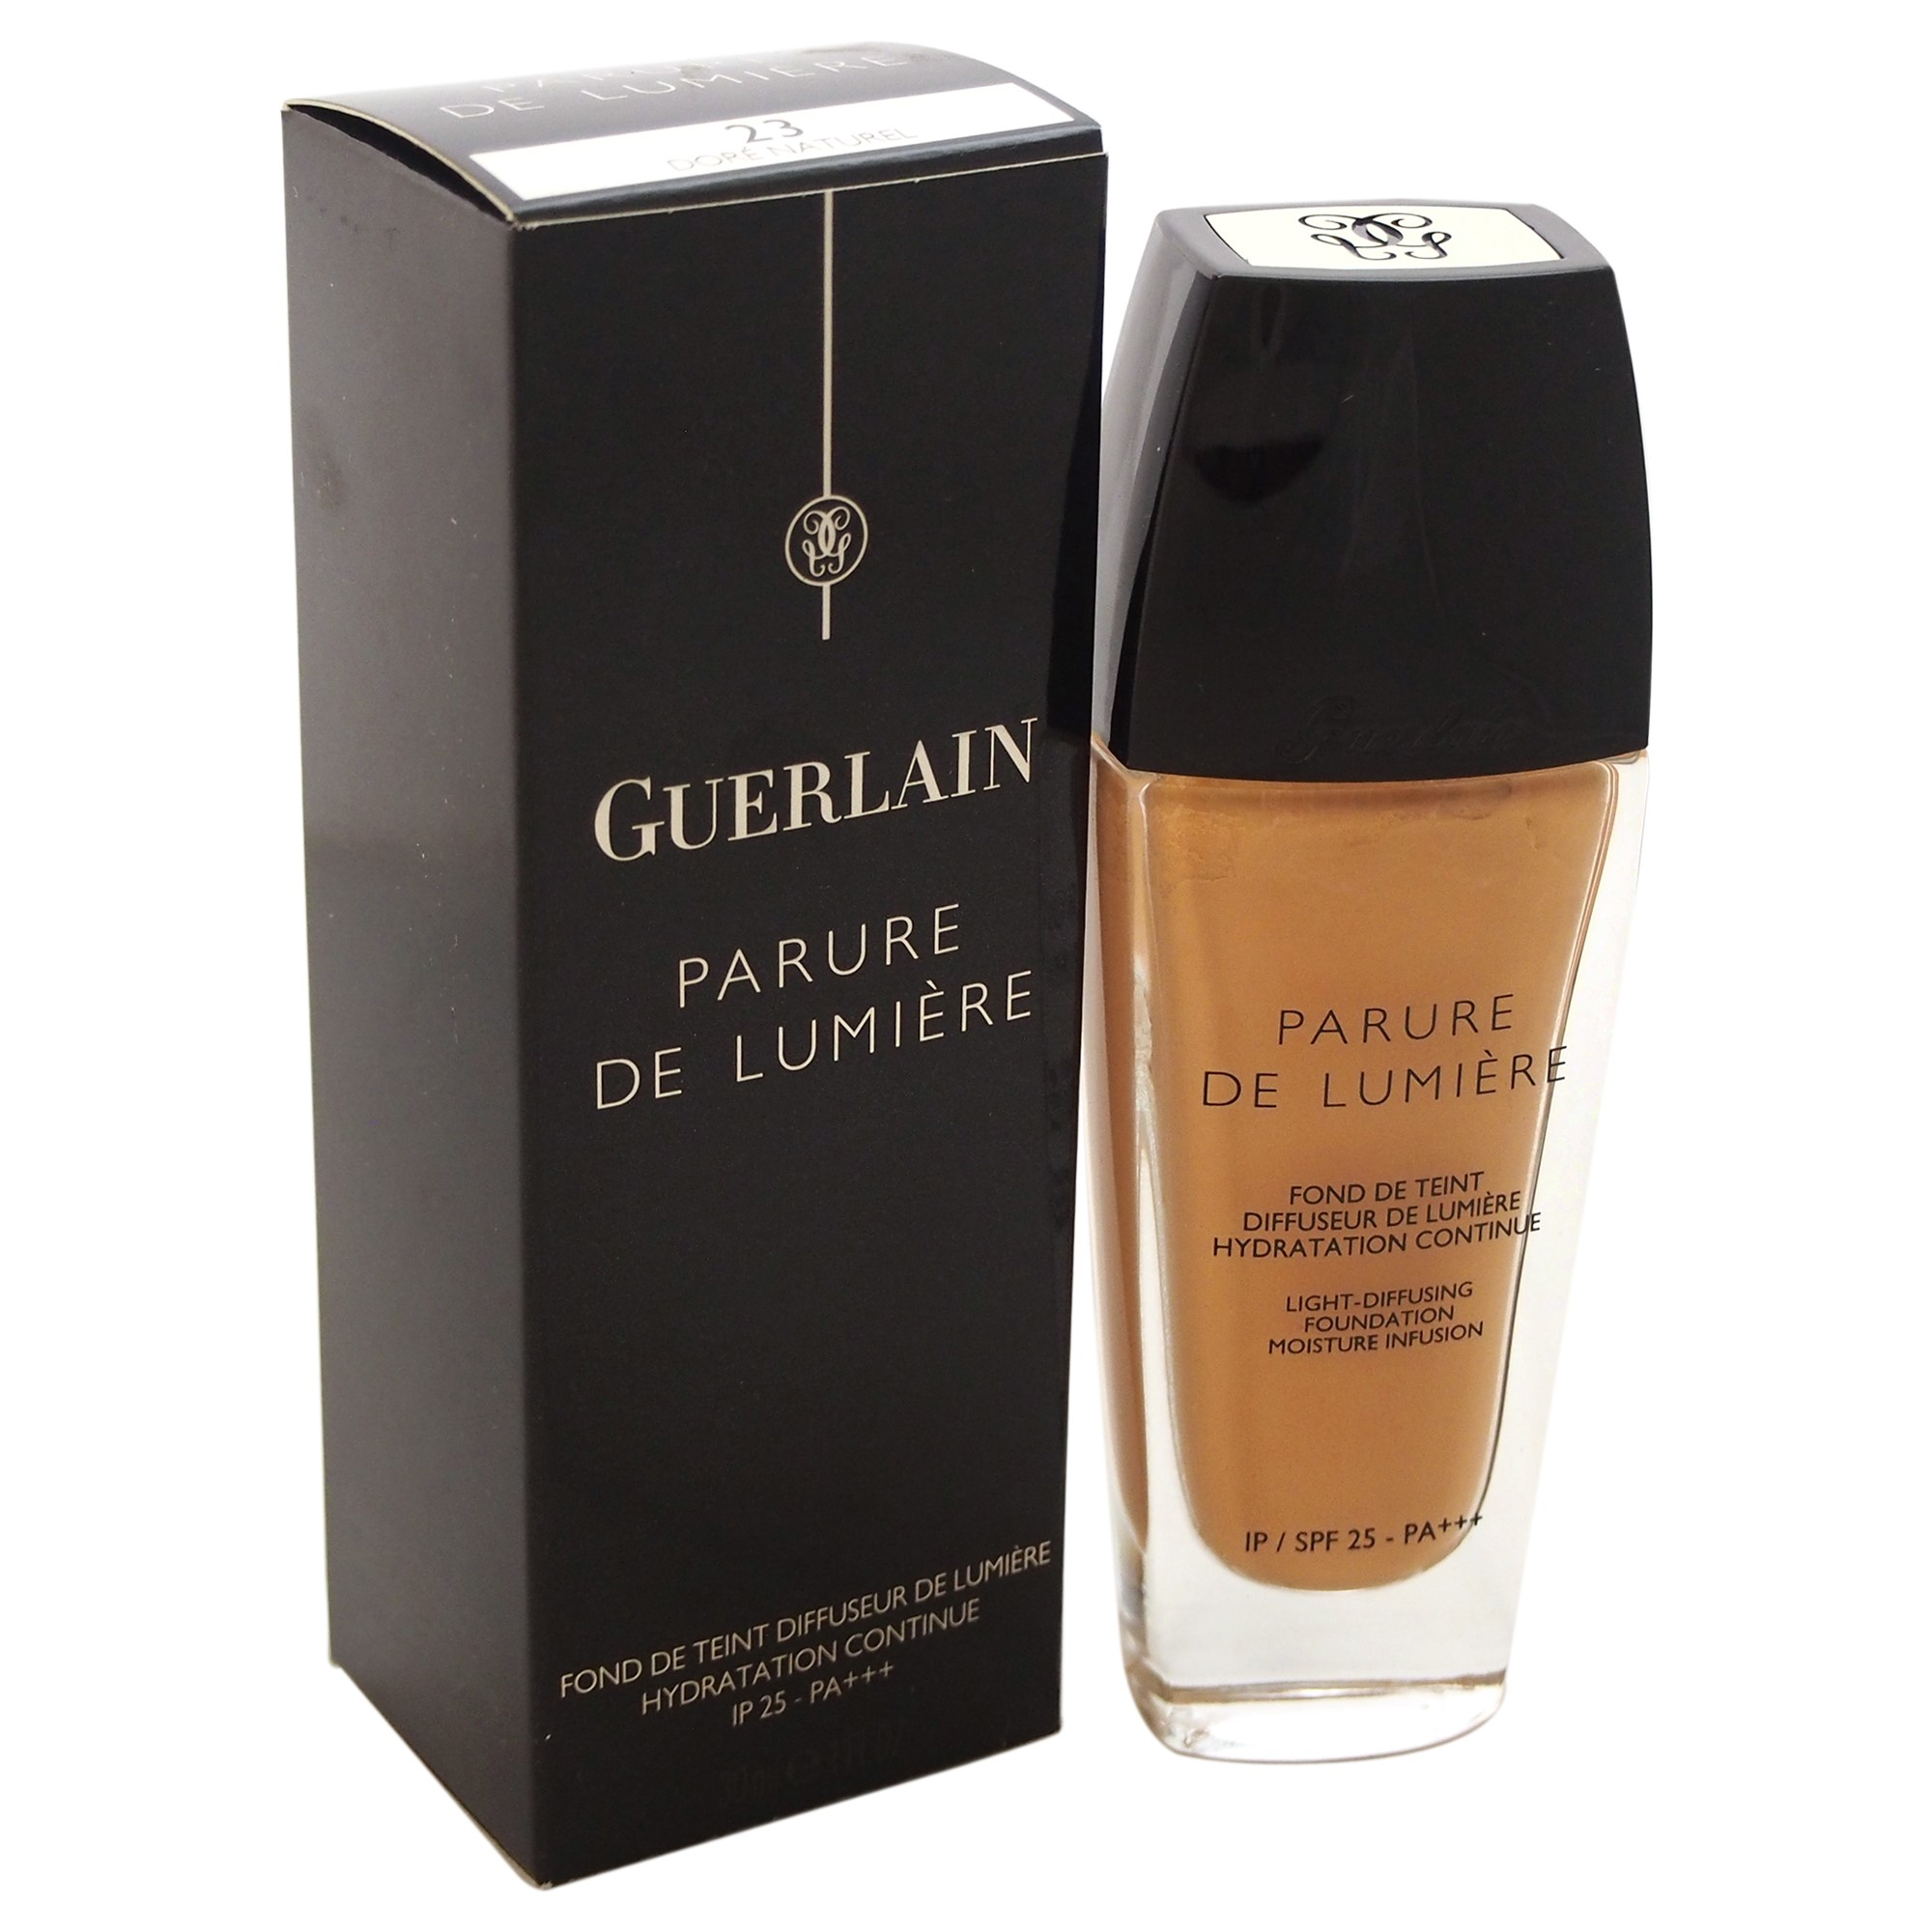 Guerlain Parure De Lumiere Light Diffusing Foundation SPF 25, #23 Dore Naturel, 1 Oz